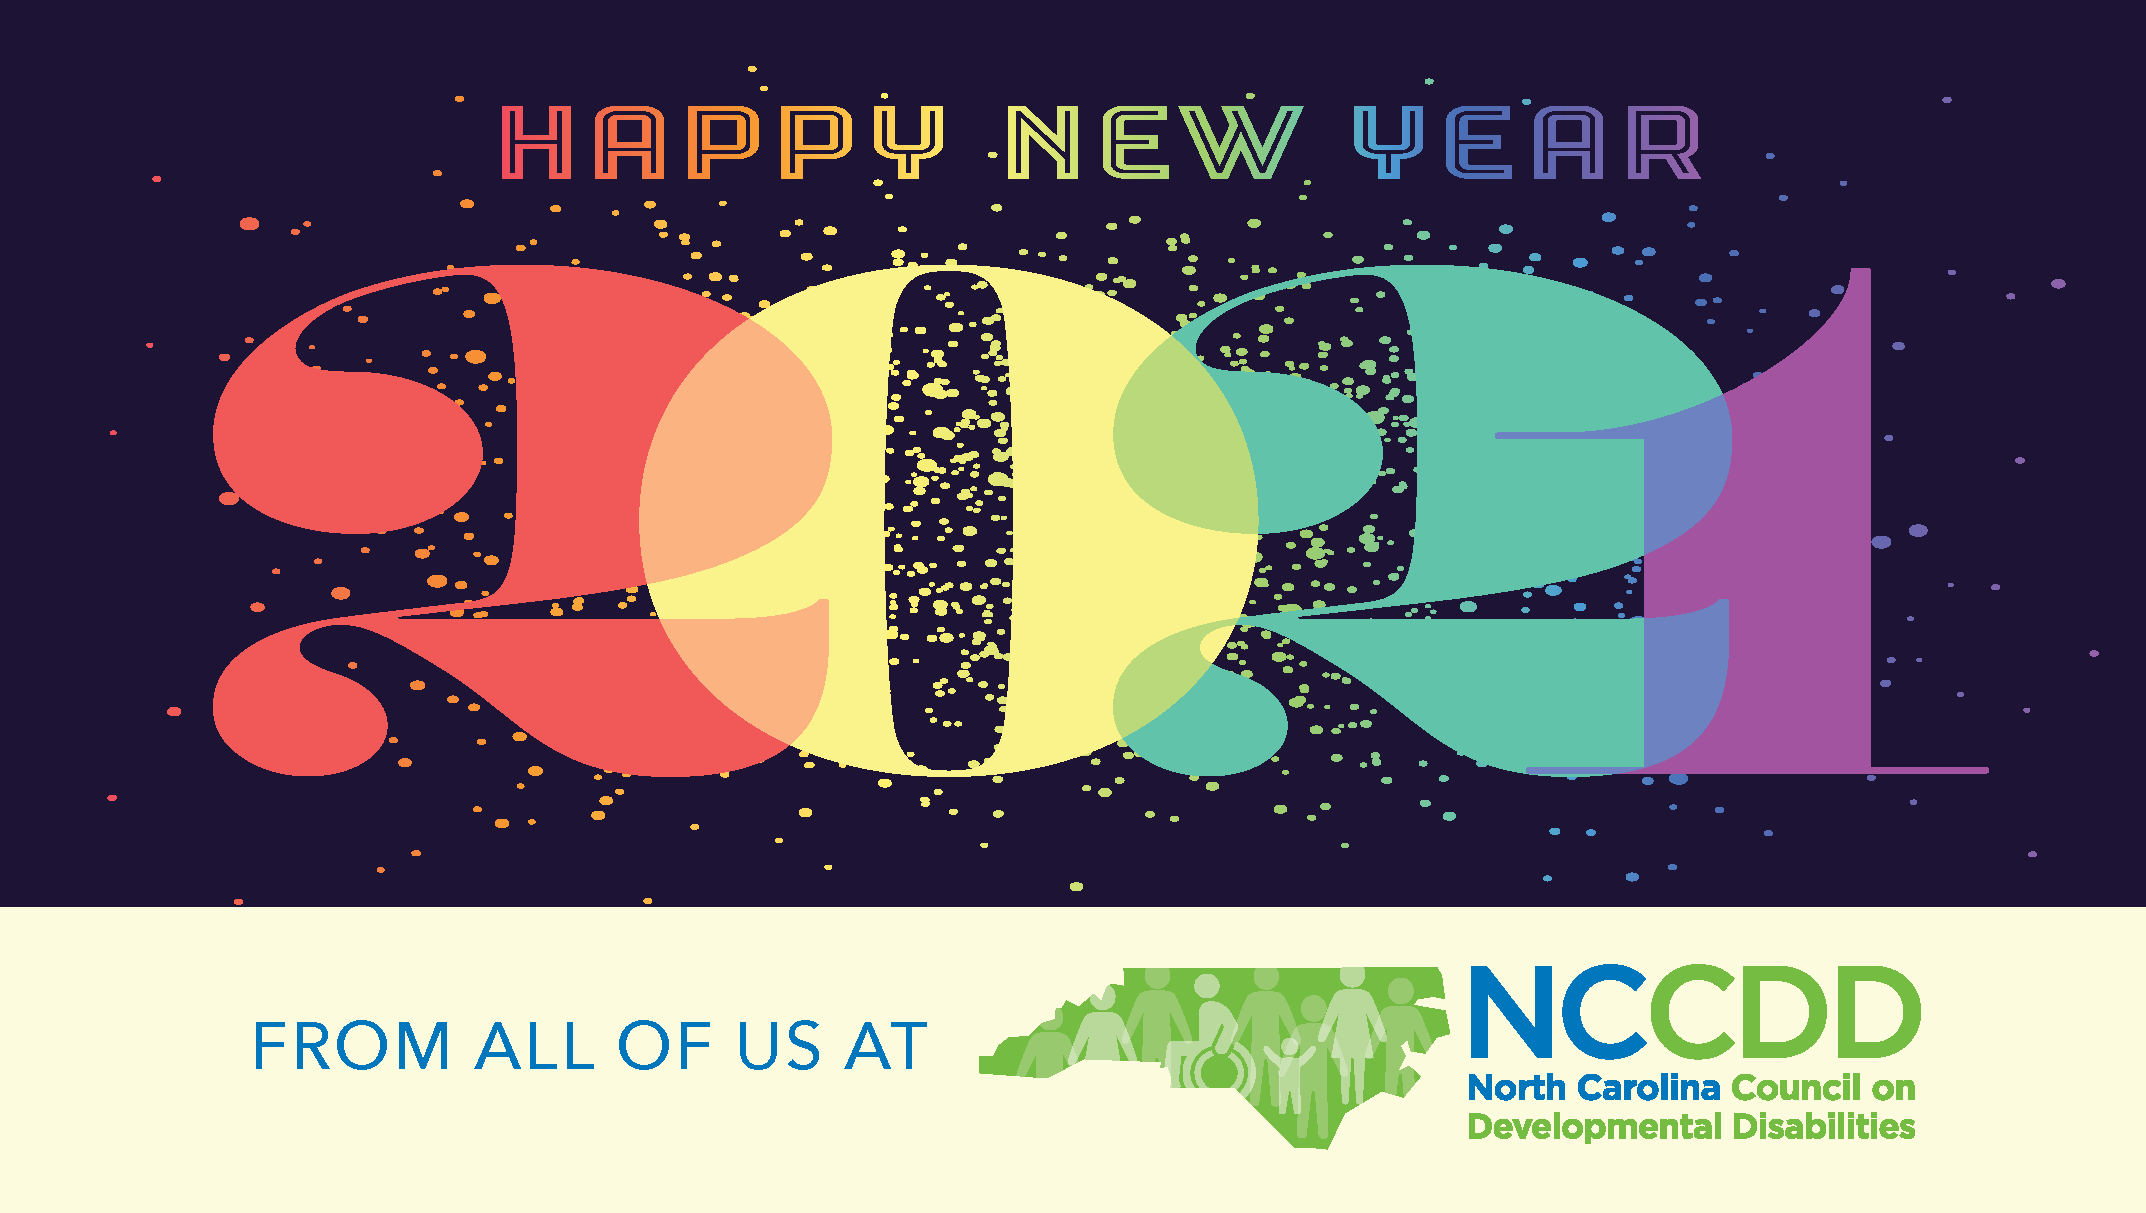 Happy New Year from all of us at NCCDD